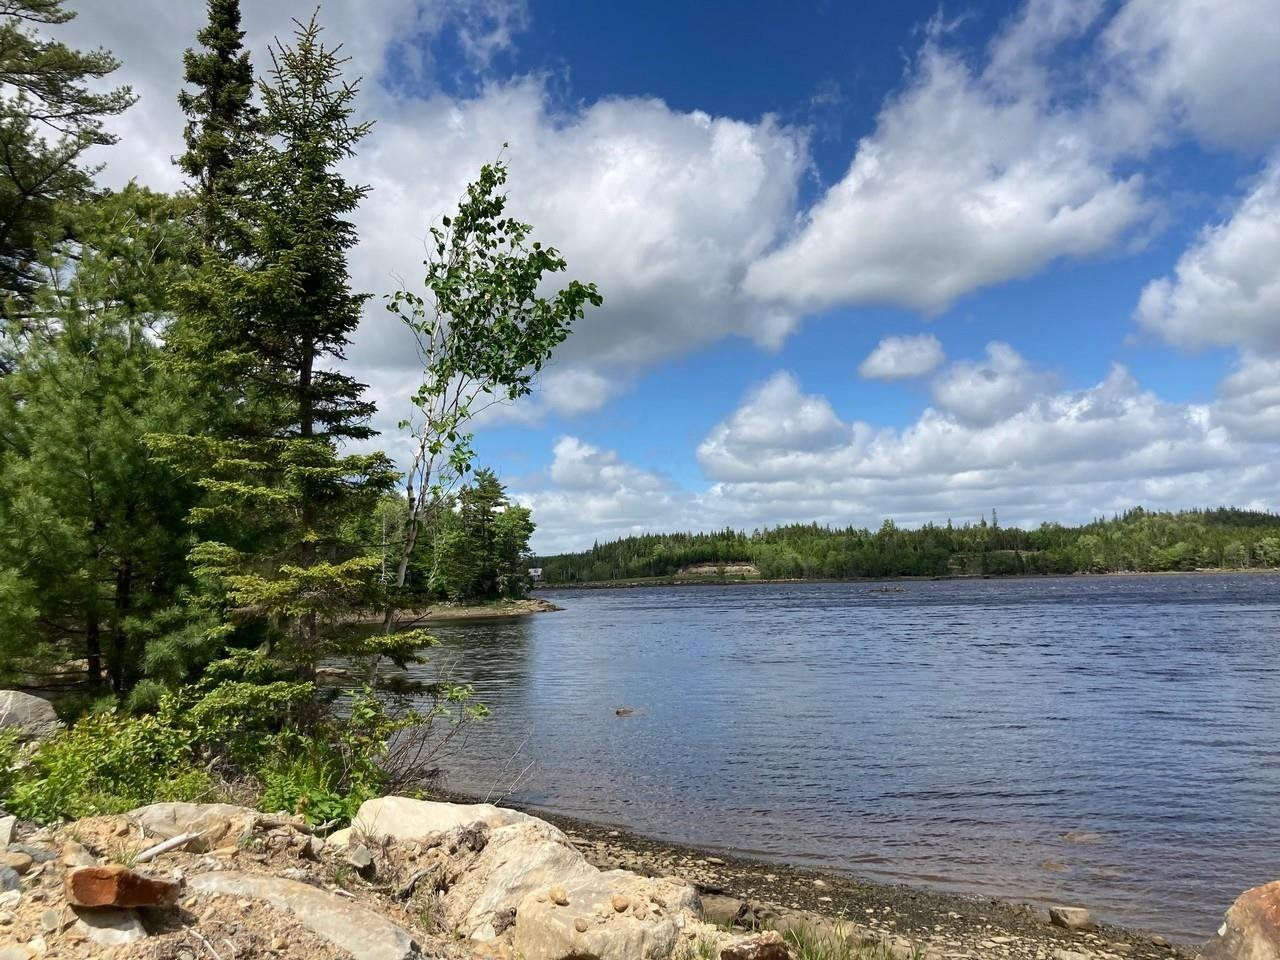 Main Photo: Lot 28 Anderson Drive in Sherbrooke: 303-Guysborough County Vacant Land for sale (Highland Region)  : MLS®# 202115629